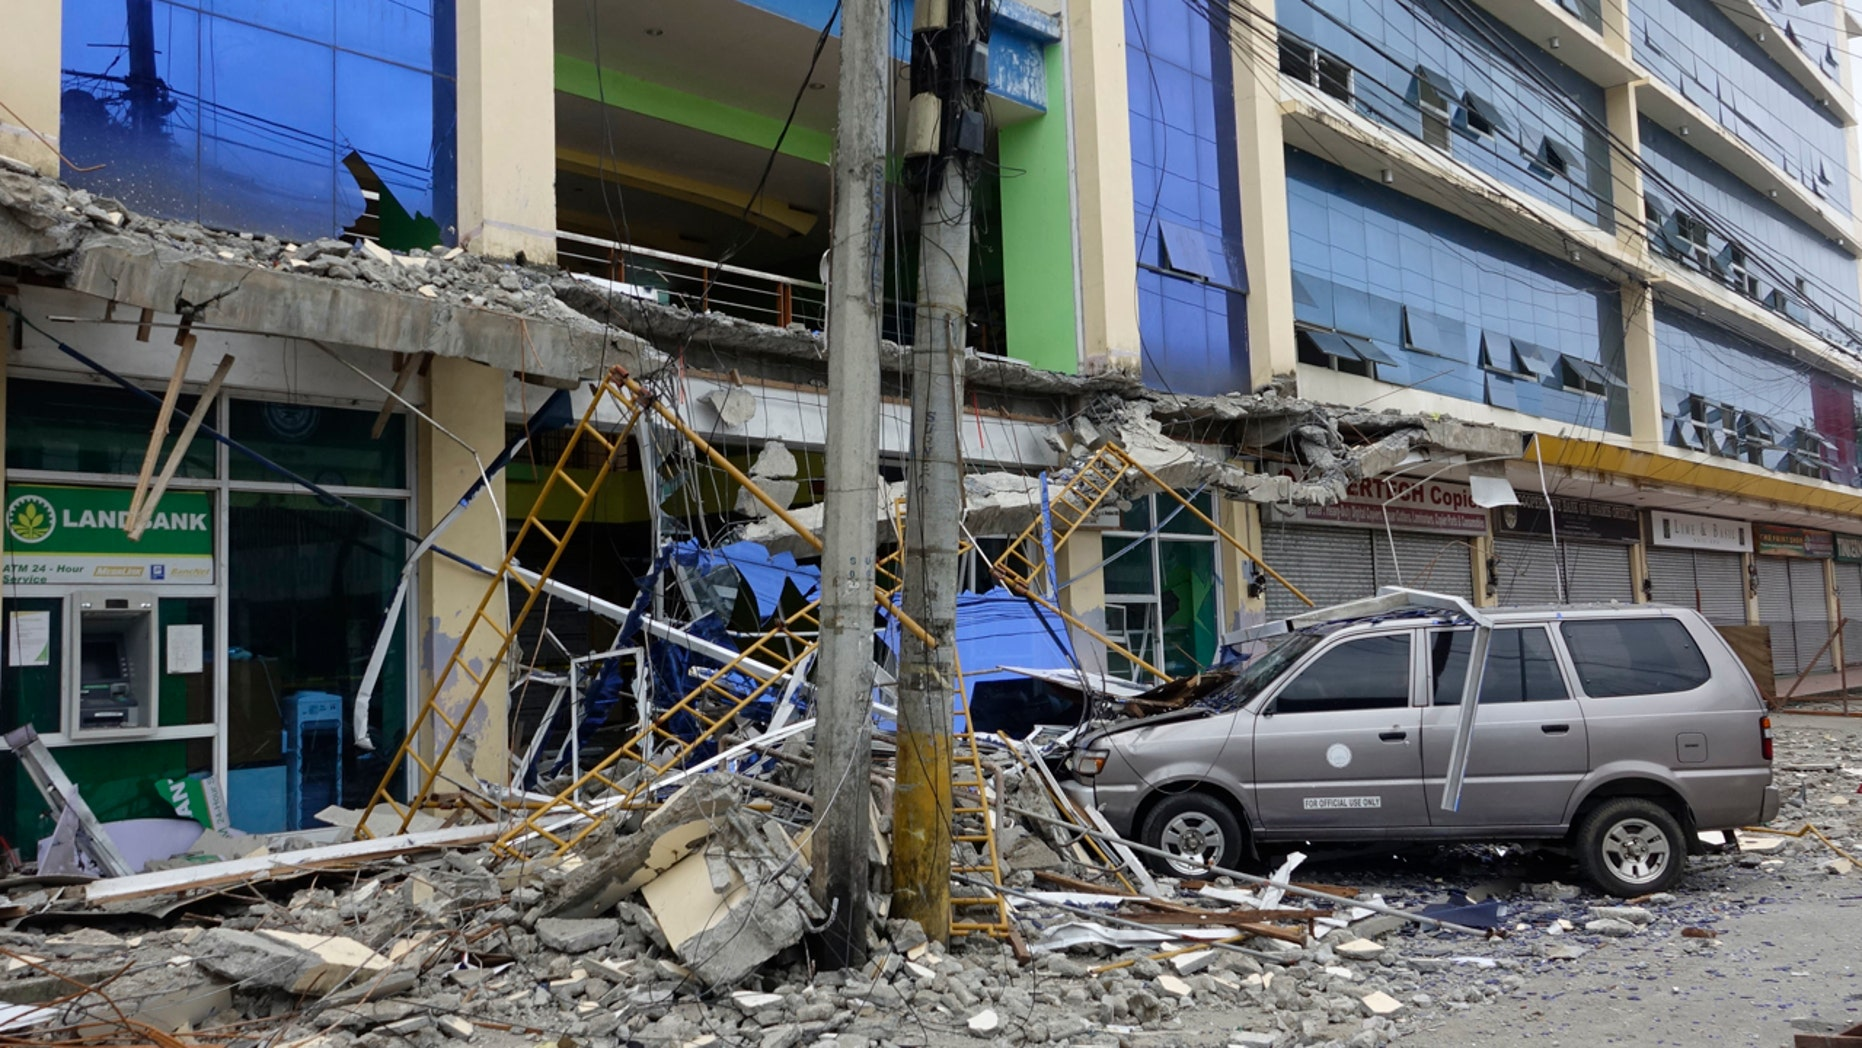 Fallen debris from a building are seen Saturday, Feb. 11, 2017 following a powerful nighttime earthquake that rocked Surigao city, Surigao del Norte province in southern Philippines.